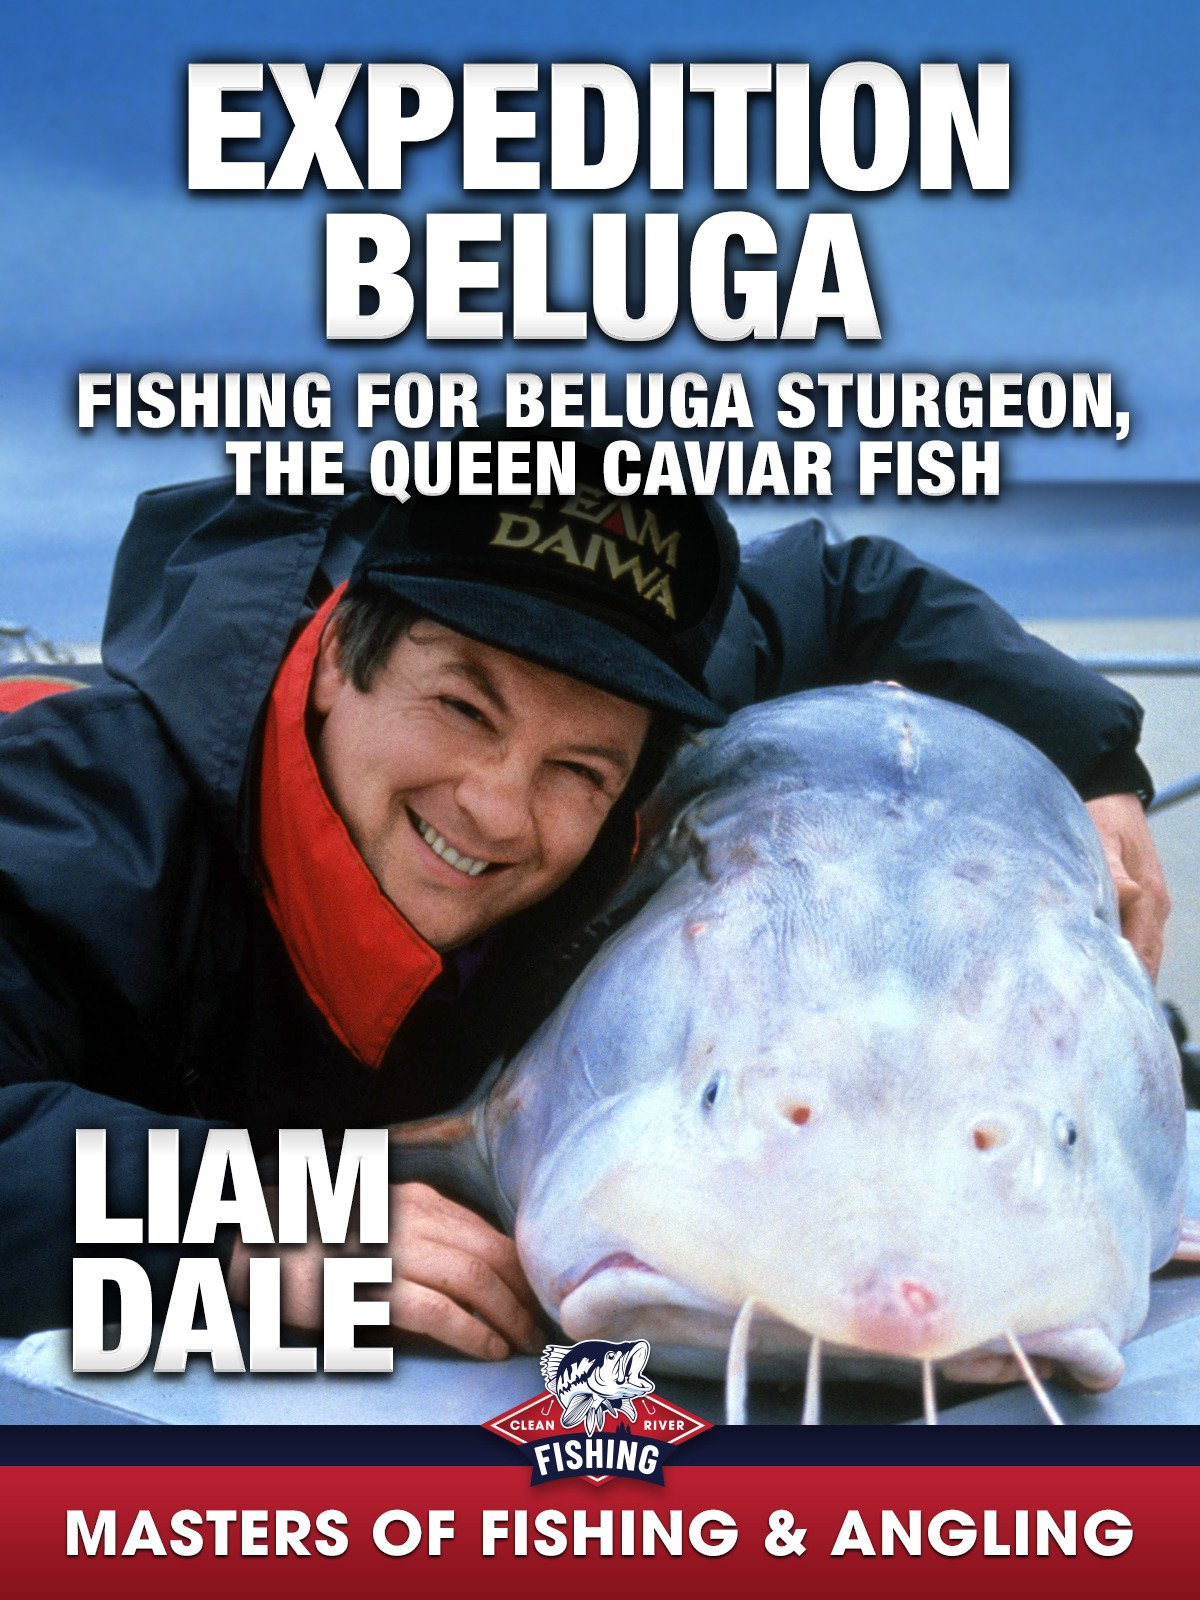 Expedition Beluga: Fishing for Beluga Sturgeon, the Queen Caviar Fish